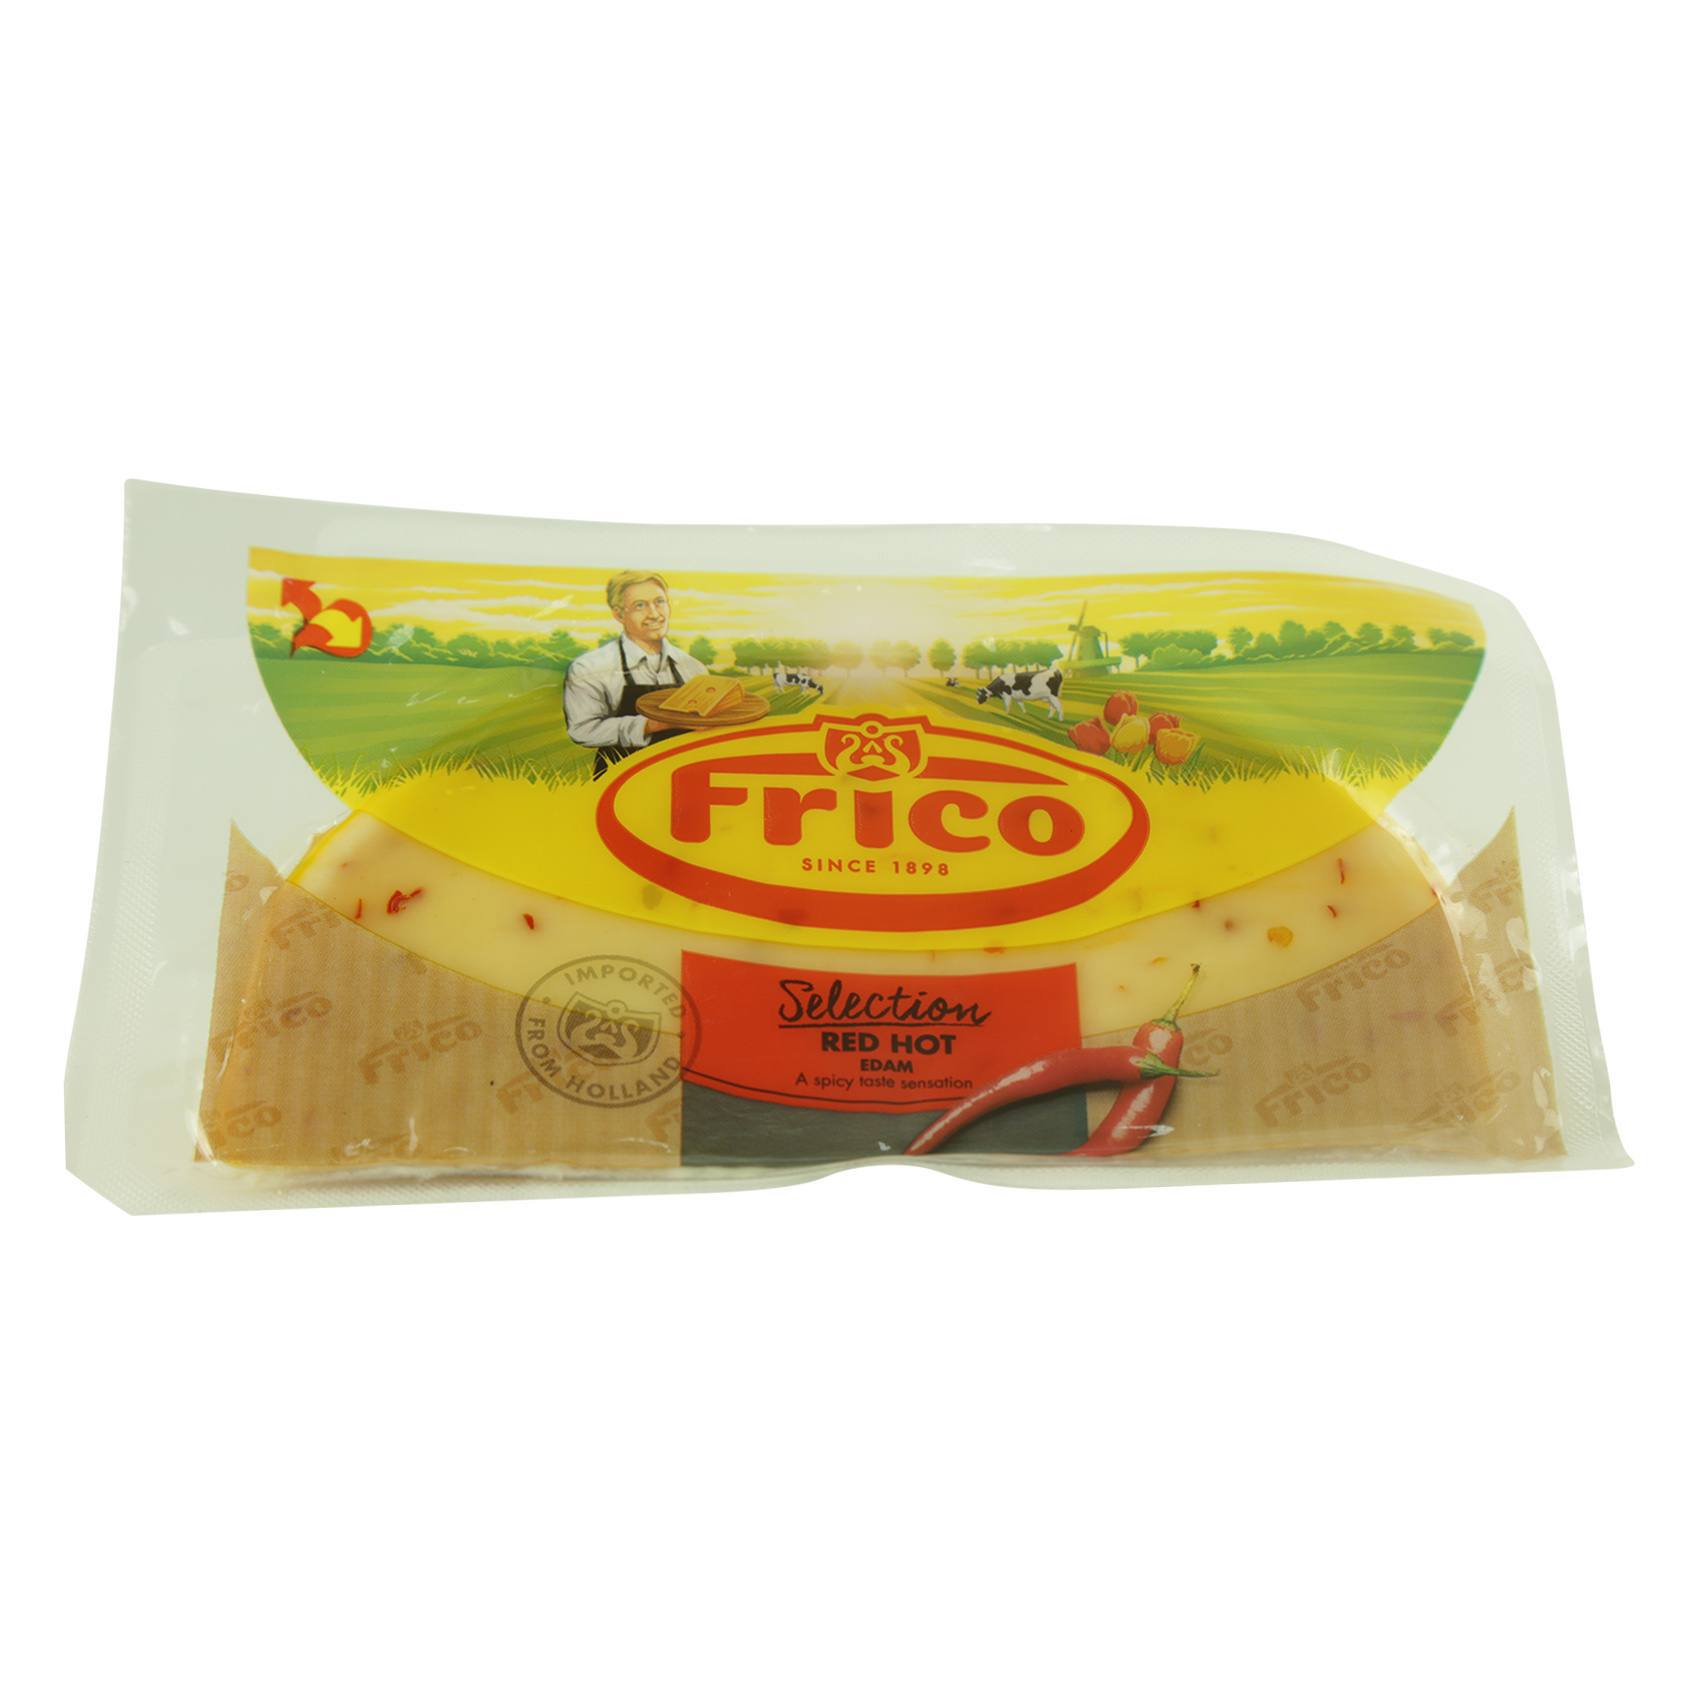 FRICO DUTCH RED HOT CHEESE CUT 235G